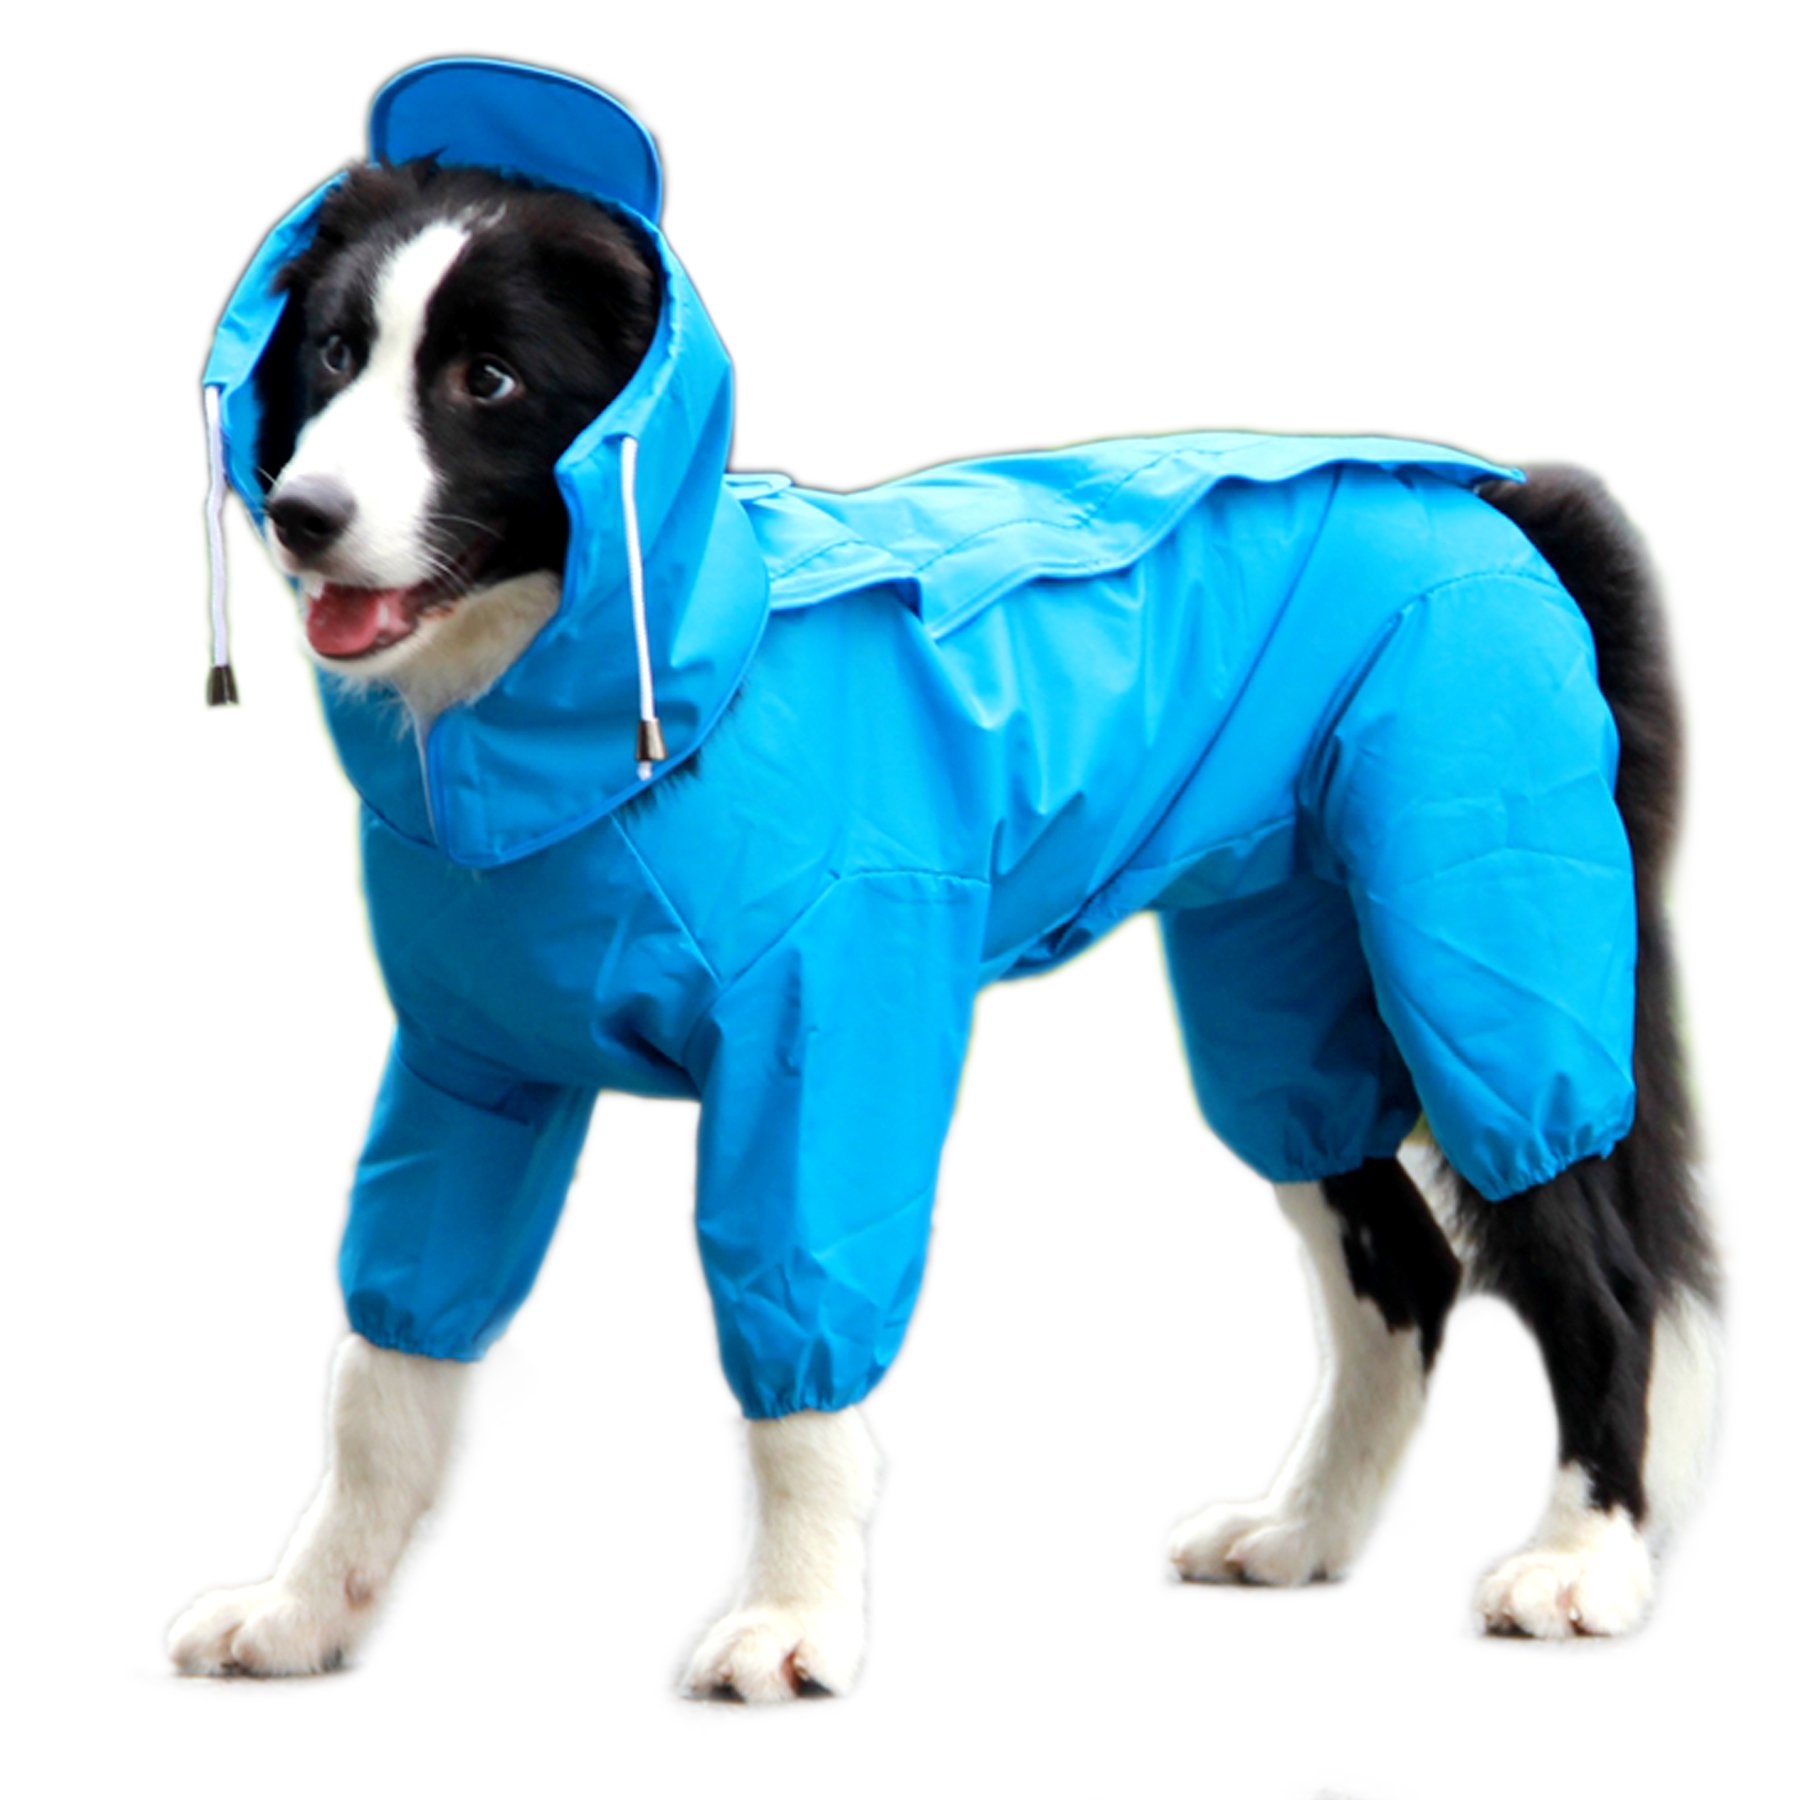 Alfie Pet - Bella Rainy Days Waterproof Raincoat (for Dogs and Cats) - Color: Blue, Size: Medium by Alfie